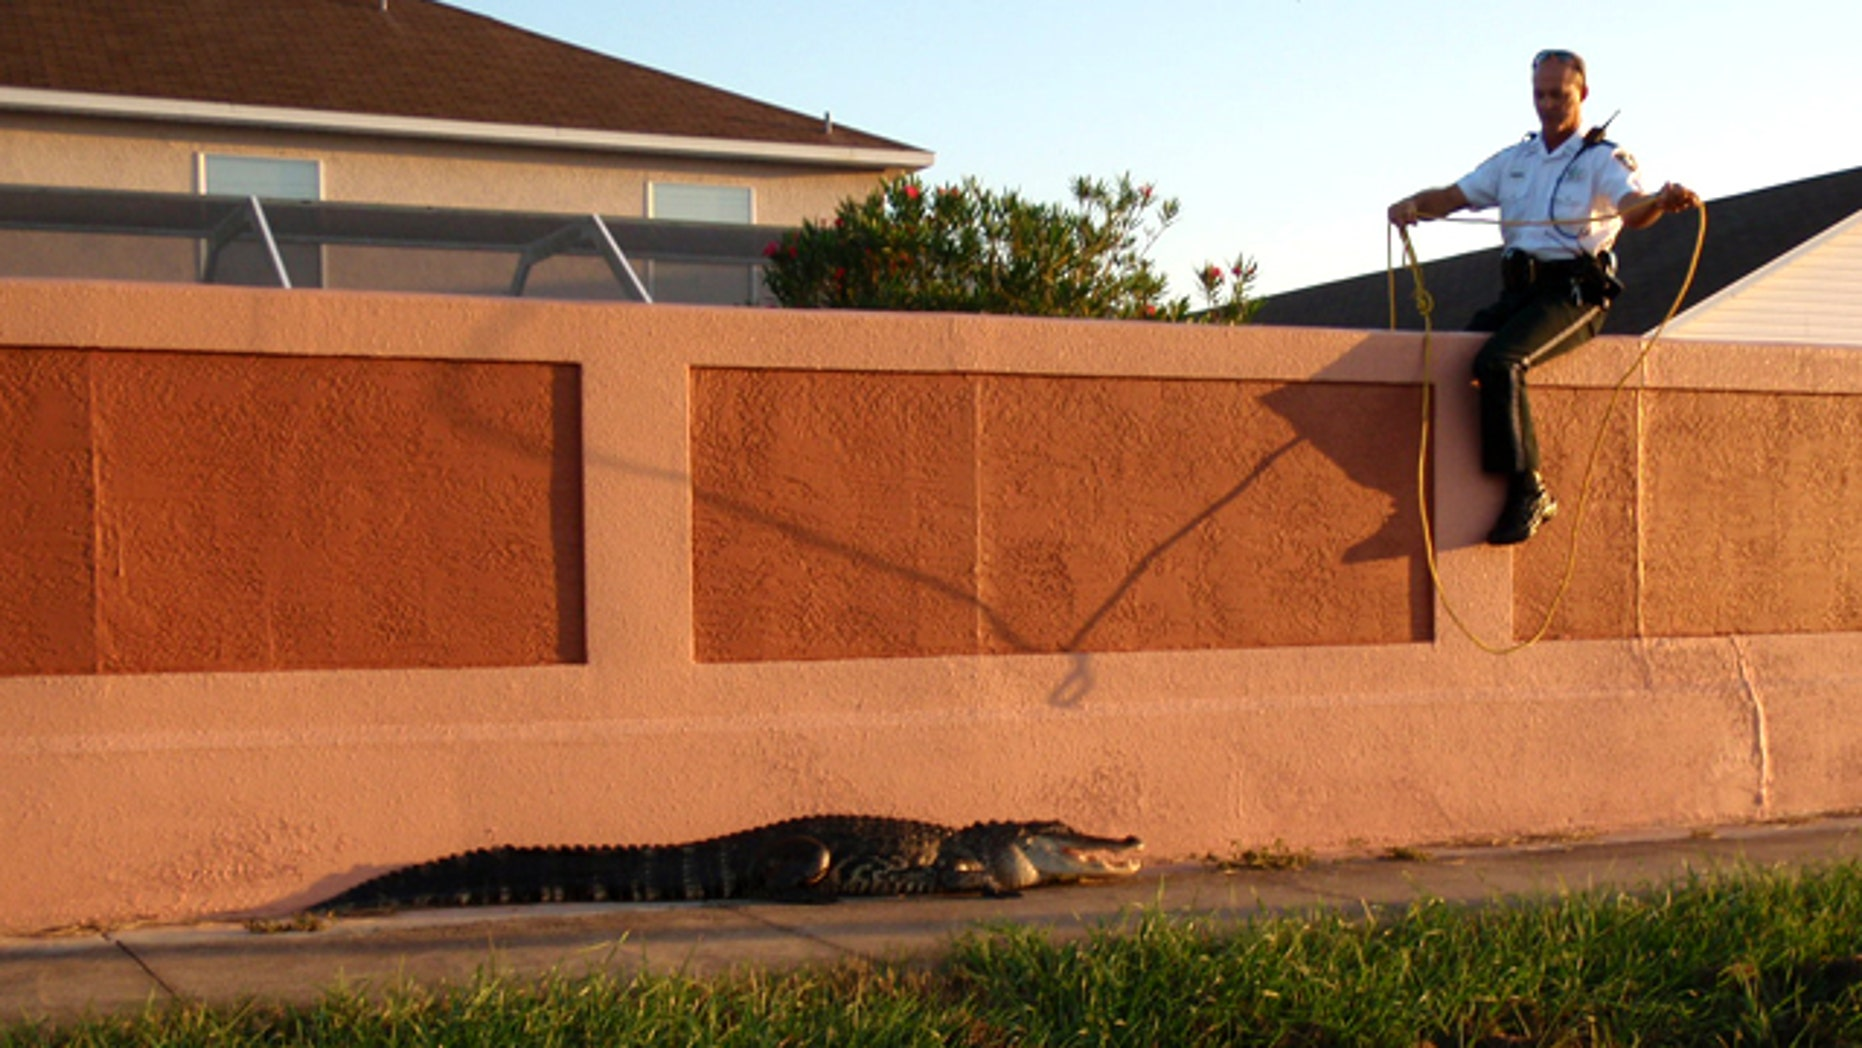 Pinellas County Sheriff's Office deputies captured a seven and a half foot alligator as it walked toward a school crossing at Forest Lakes Elementary School in Oldsmar, Florida.